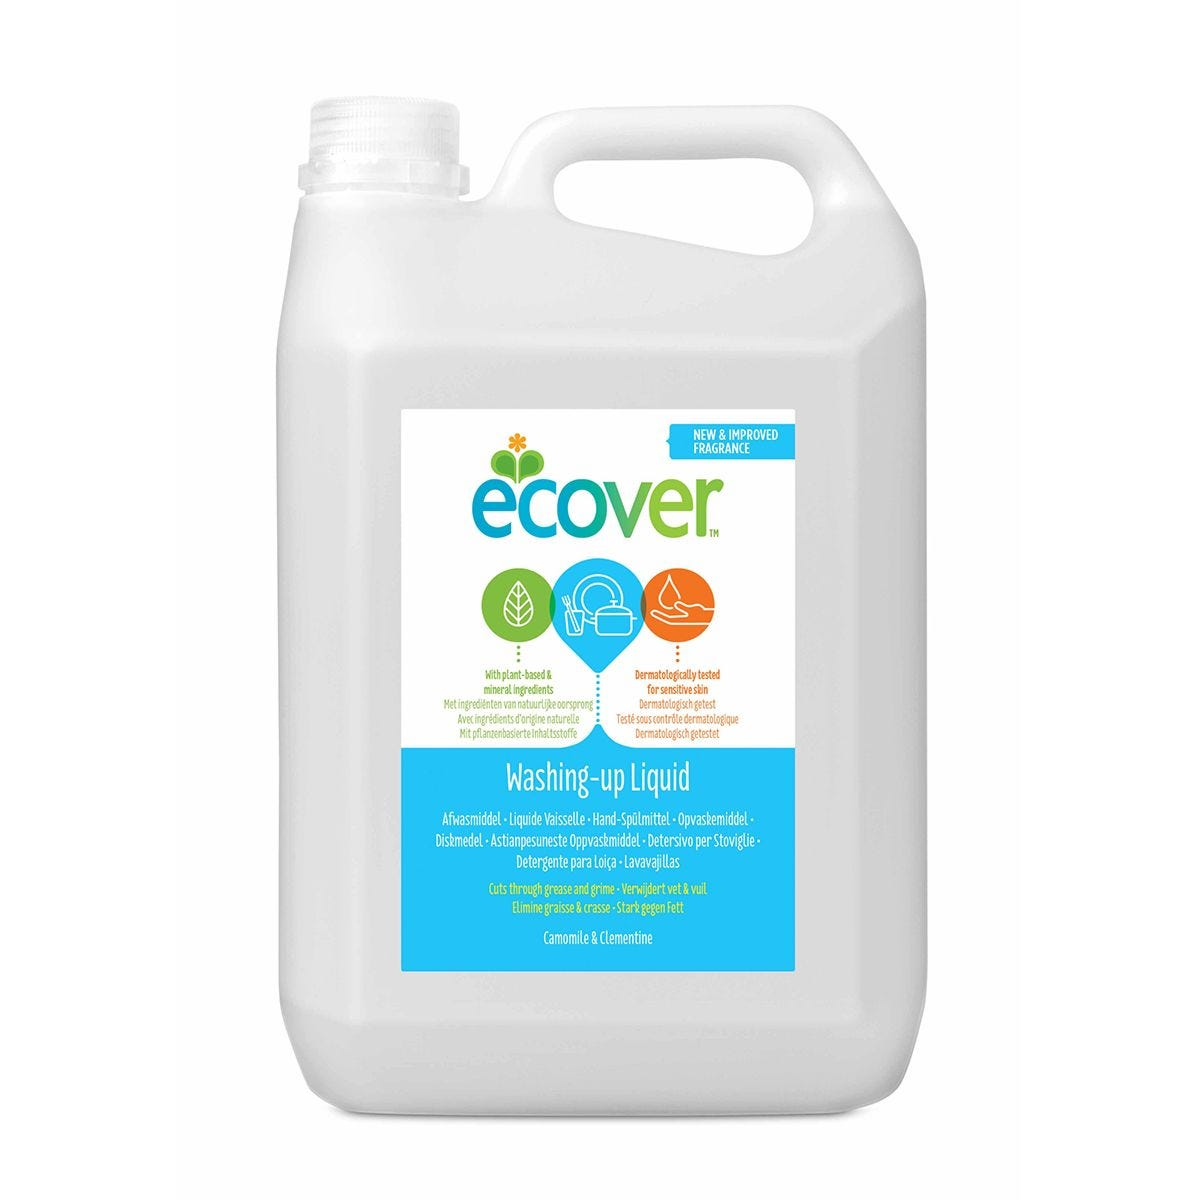 Ecover Washing Up Liquid 5L Refill - Camomile & Clementine